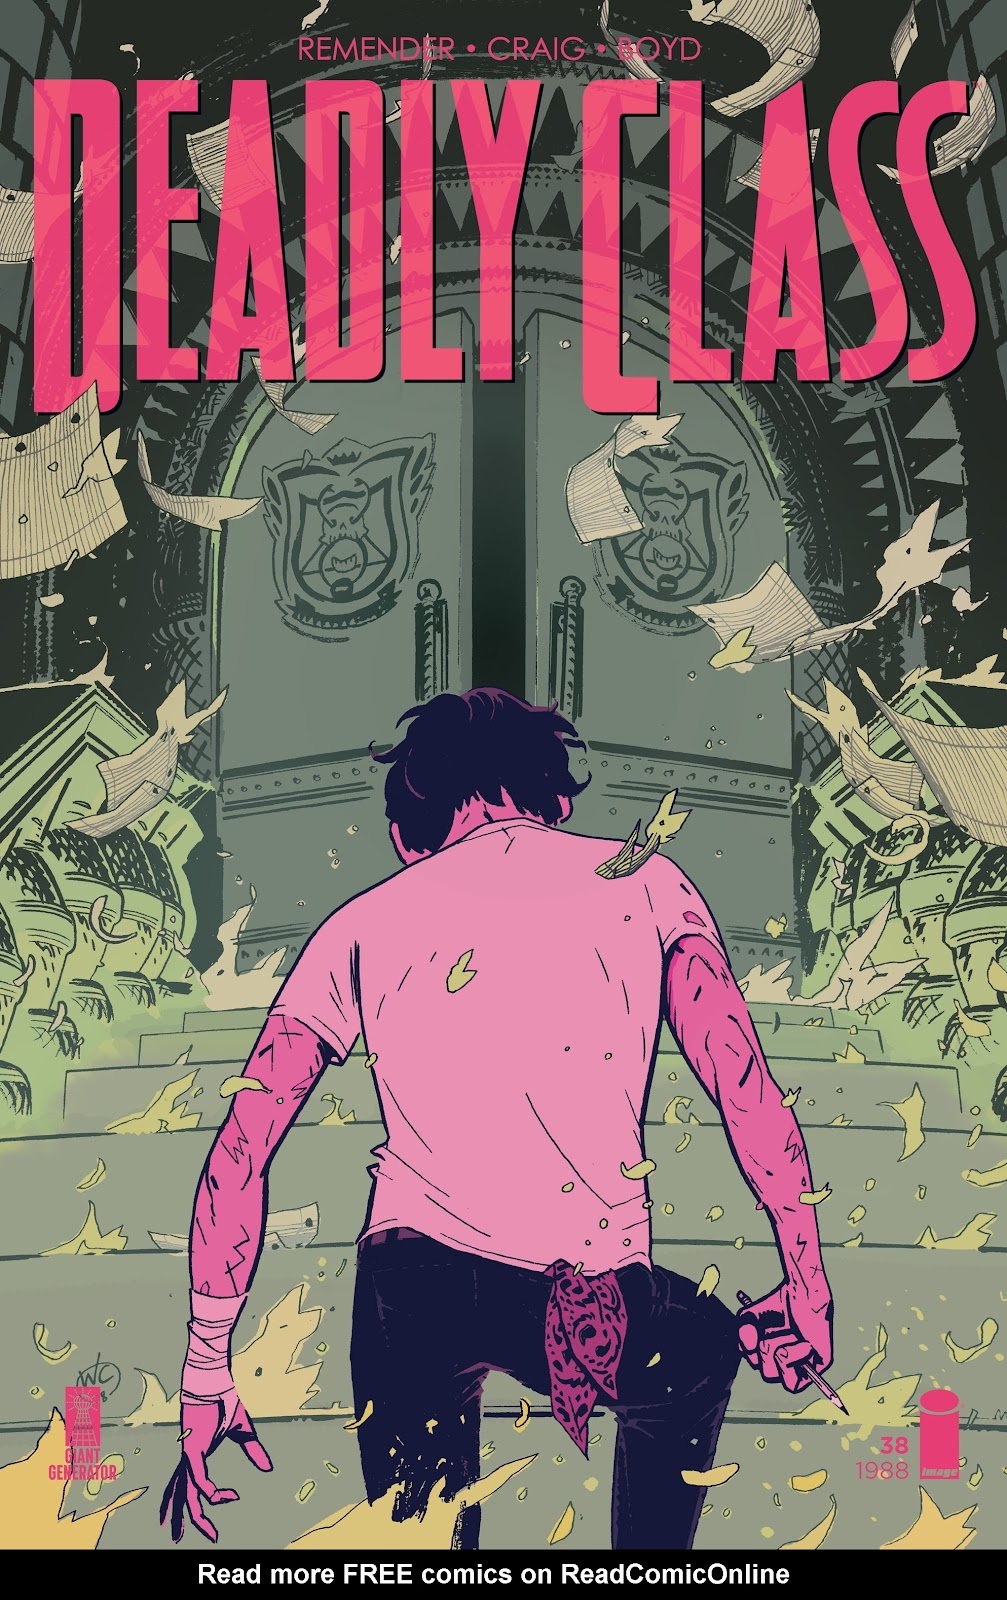 Read online Deadly Class comic -  Issue #38 - 1